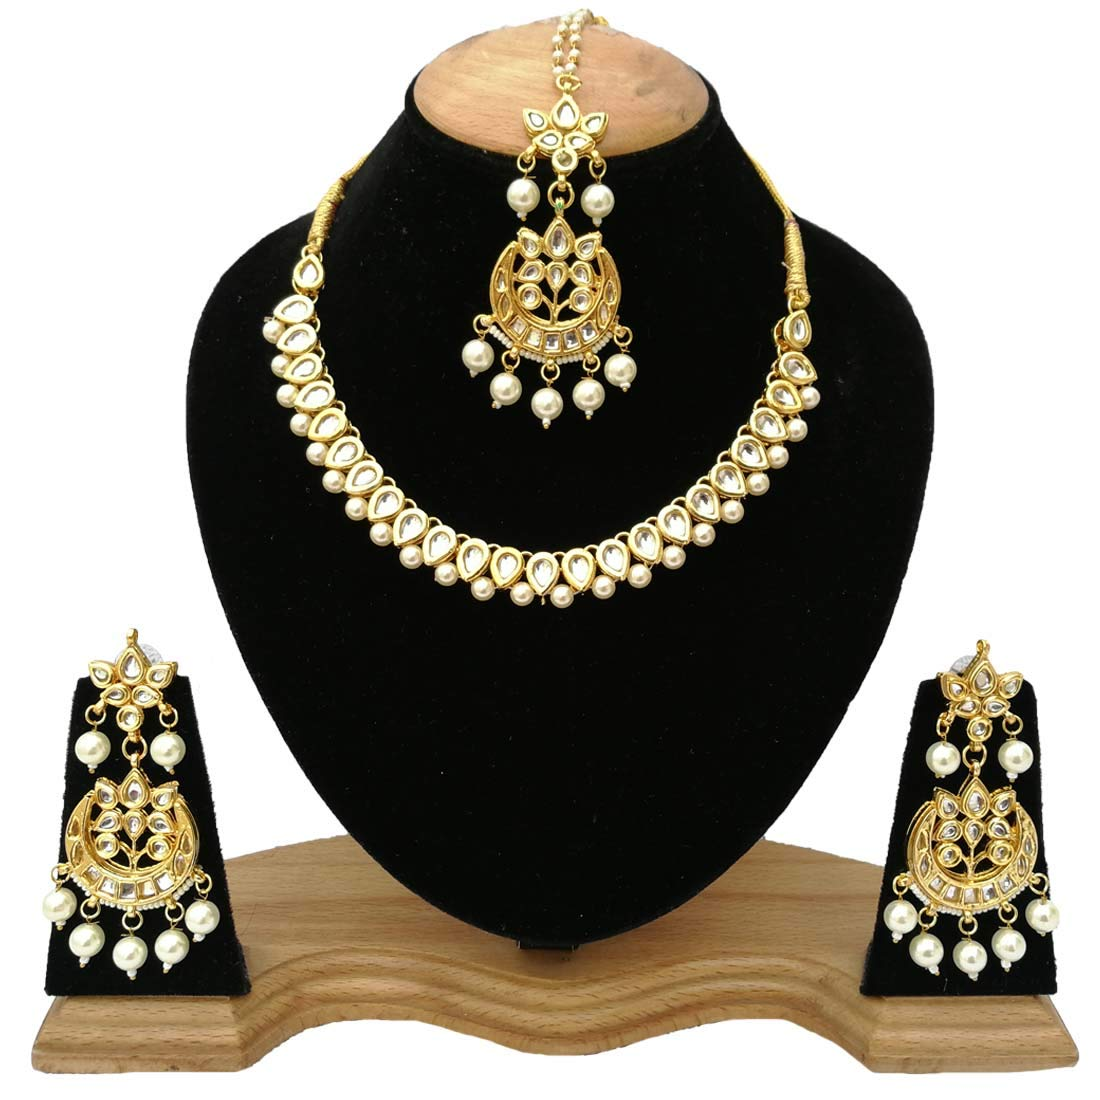 Fkraft Kundan Gold Plated Latest Wedding Necklace Jewelry Set for Women Self Handmade FMK-GLD076